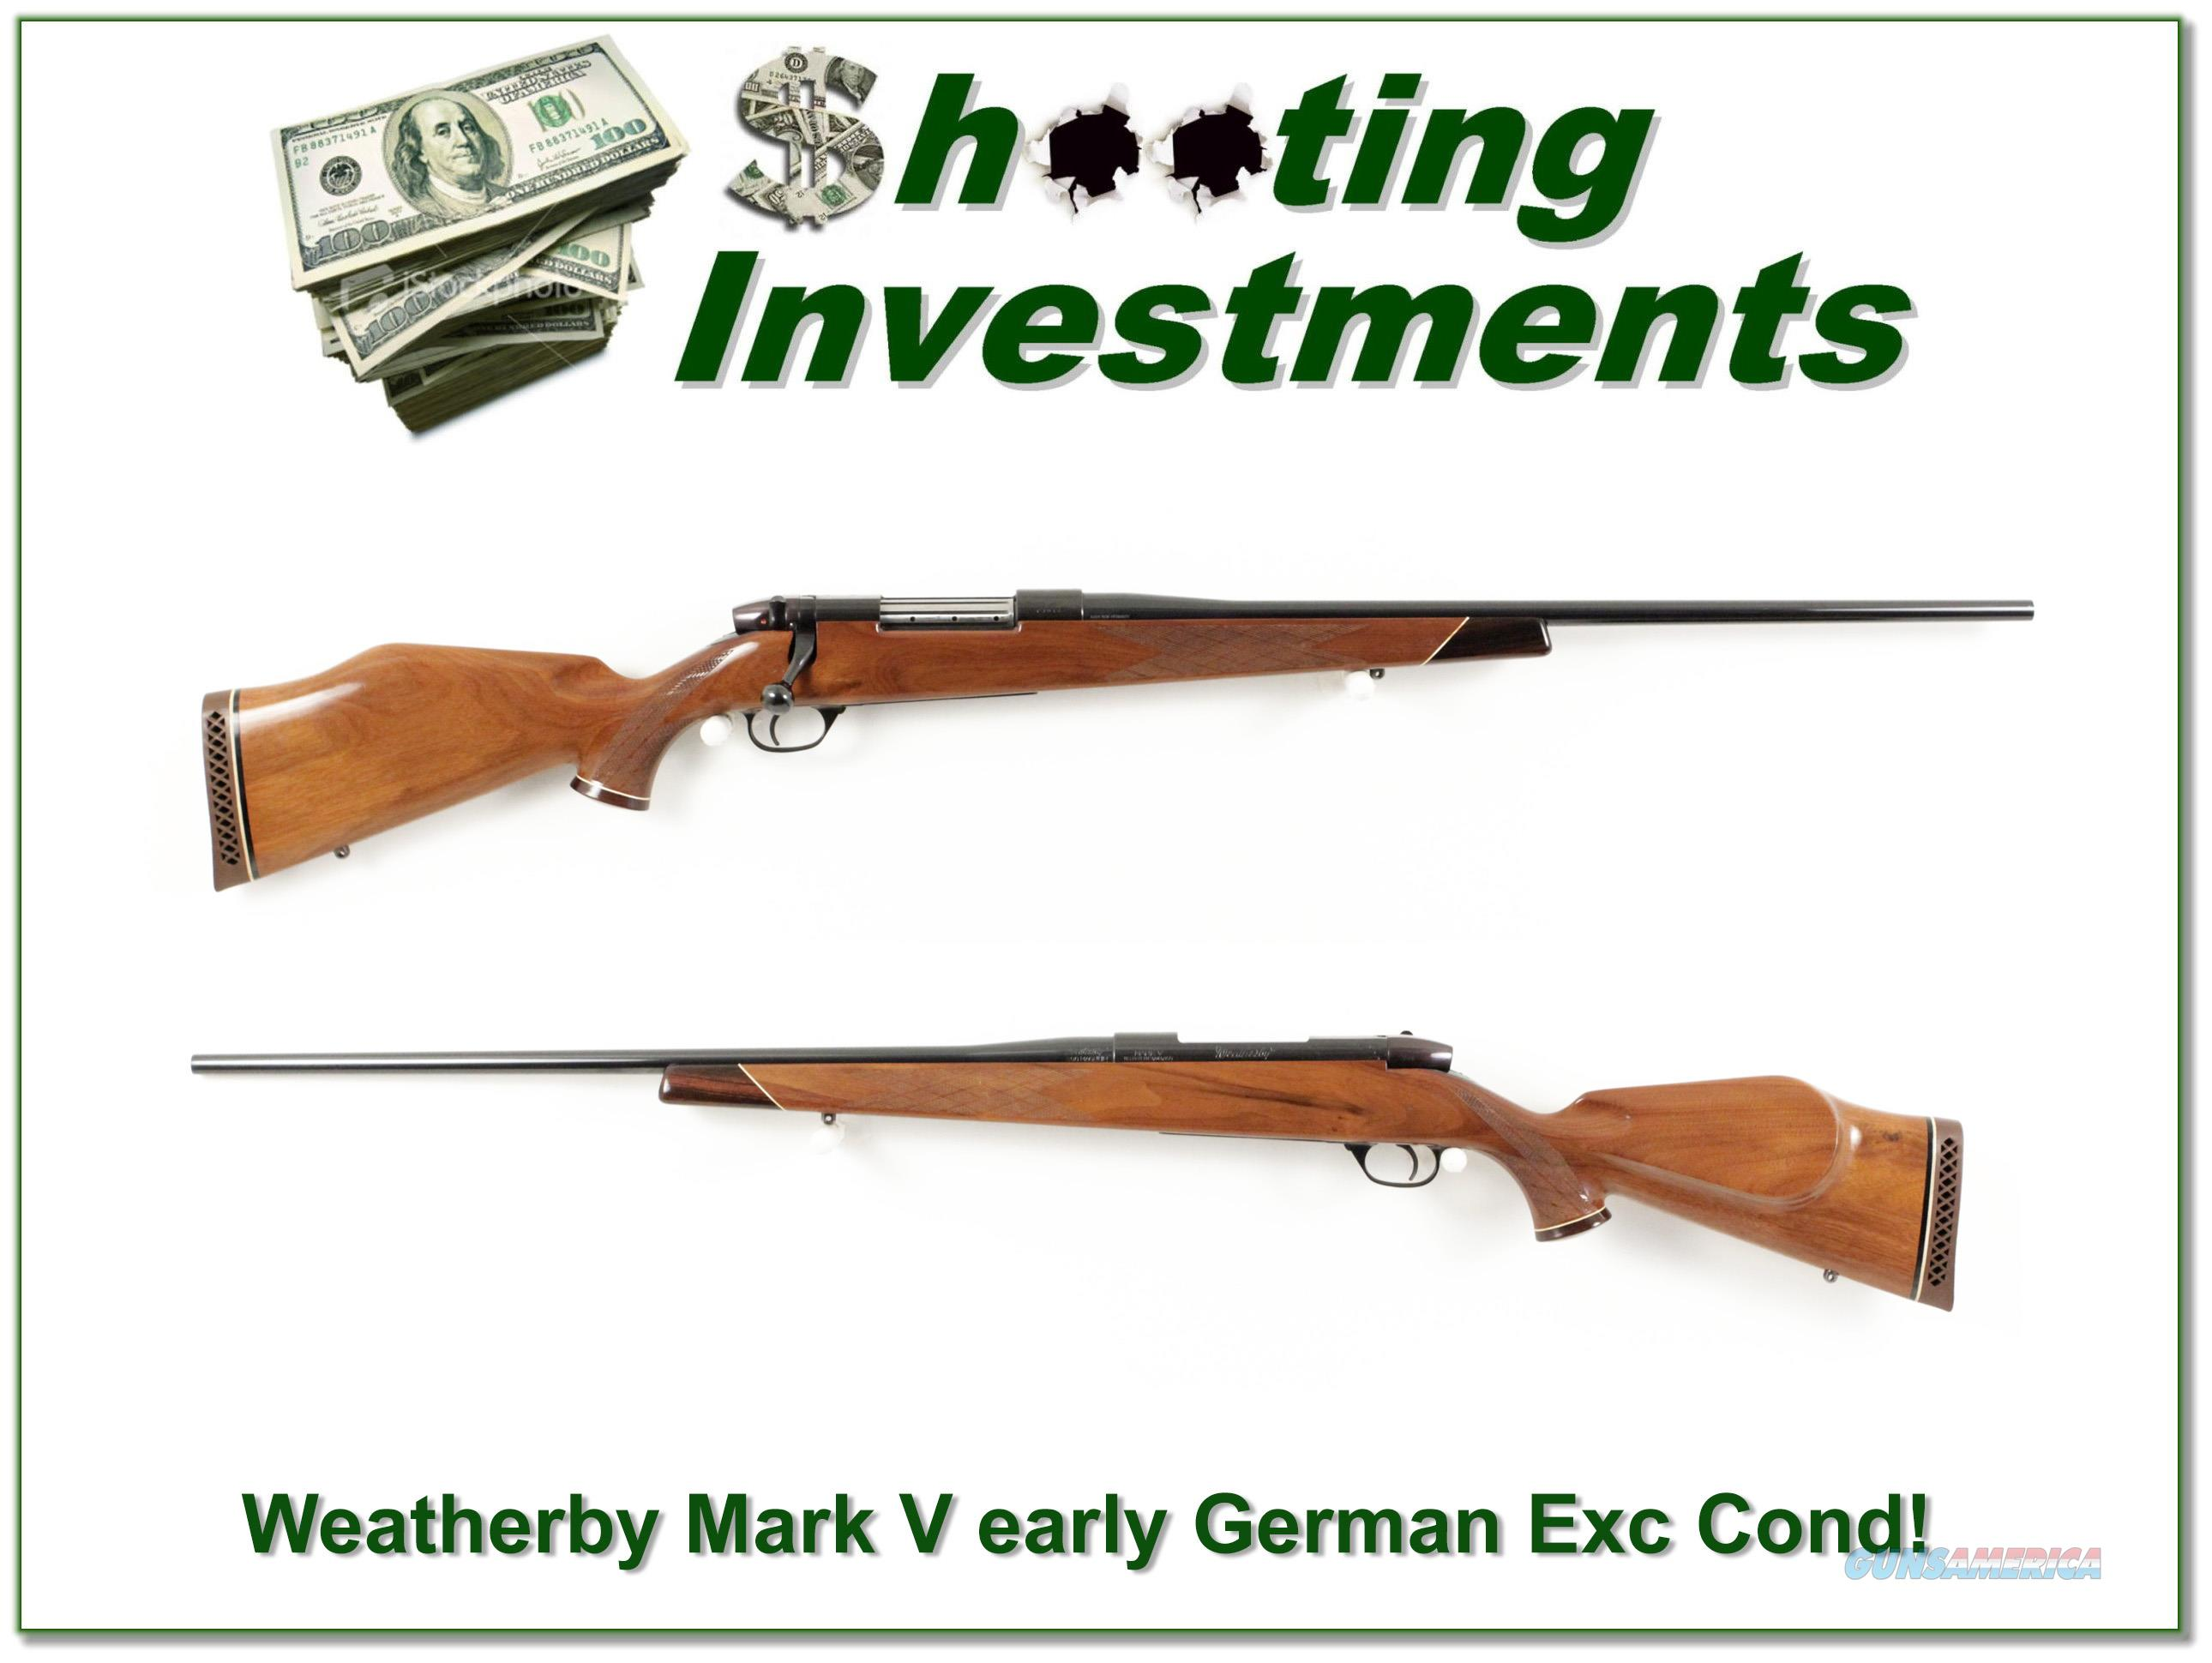 Weatherby Mark V Deluxe early German 300 Exc Cond!  Guns > Rifles > Weatherby Rifles > Sporting